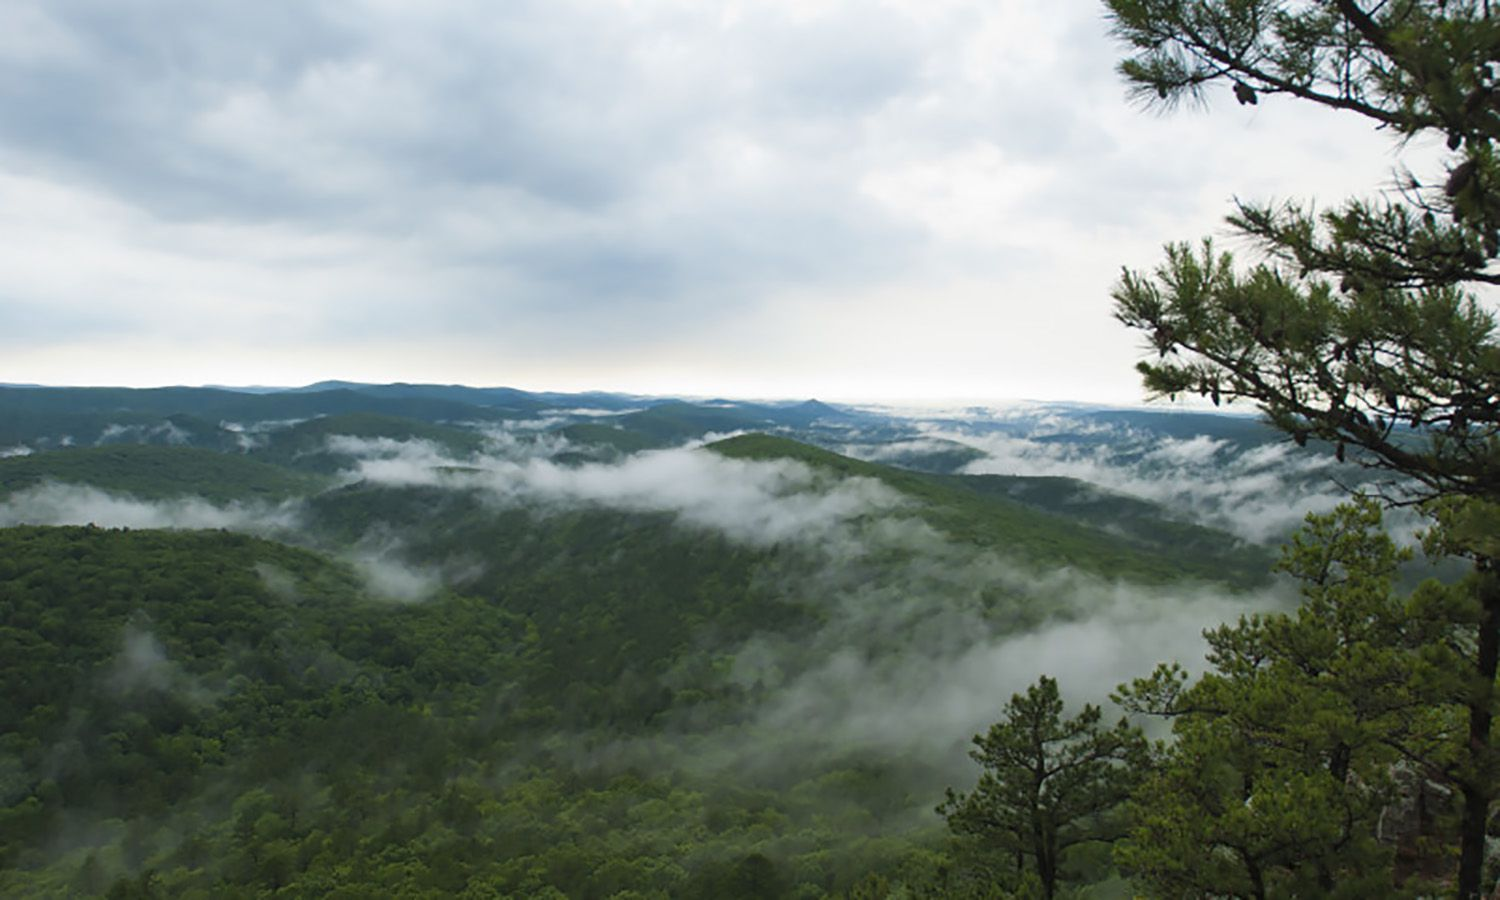 The Charlton Recreation Area is located in the Ouachita National Forest